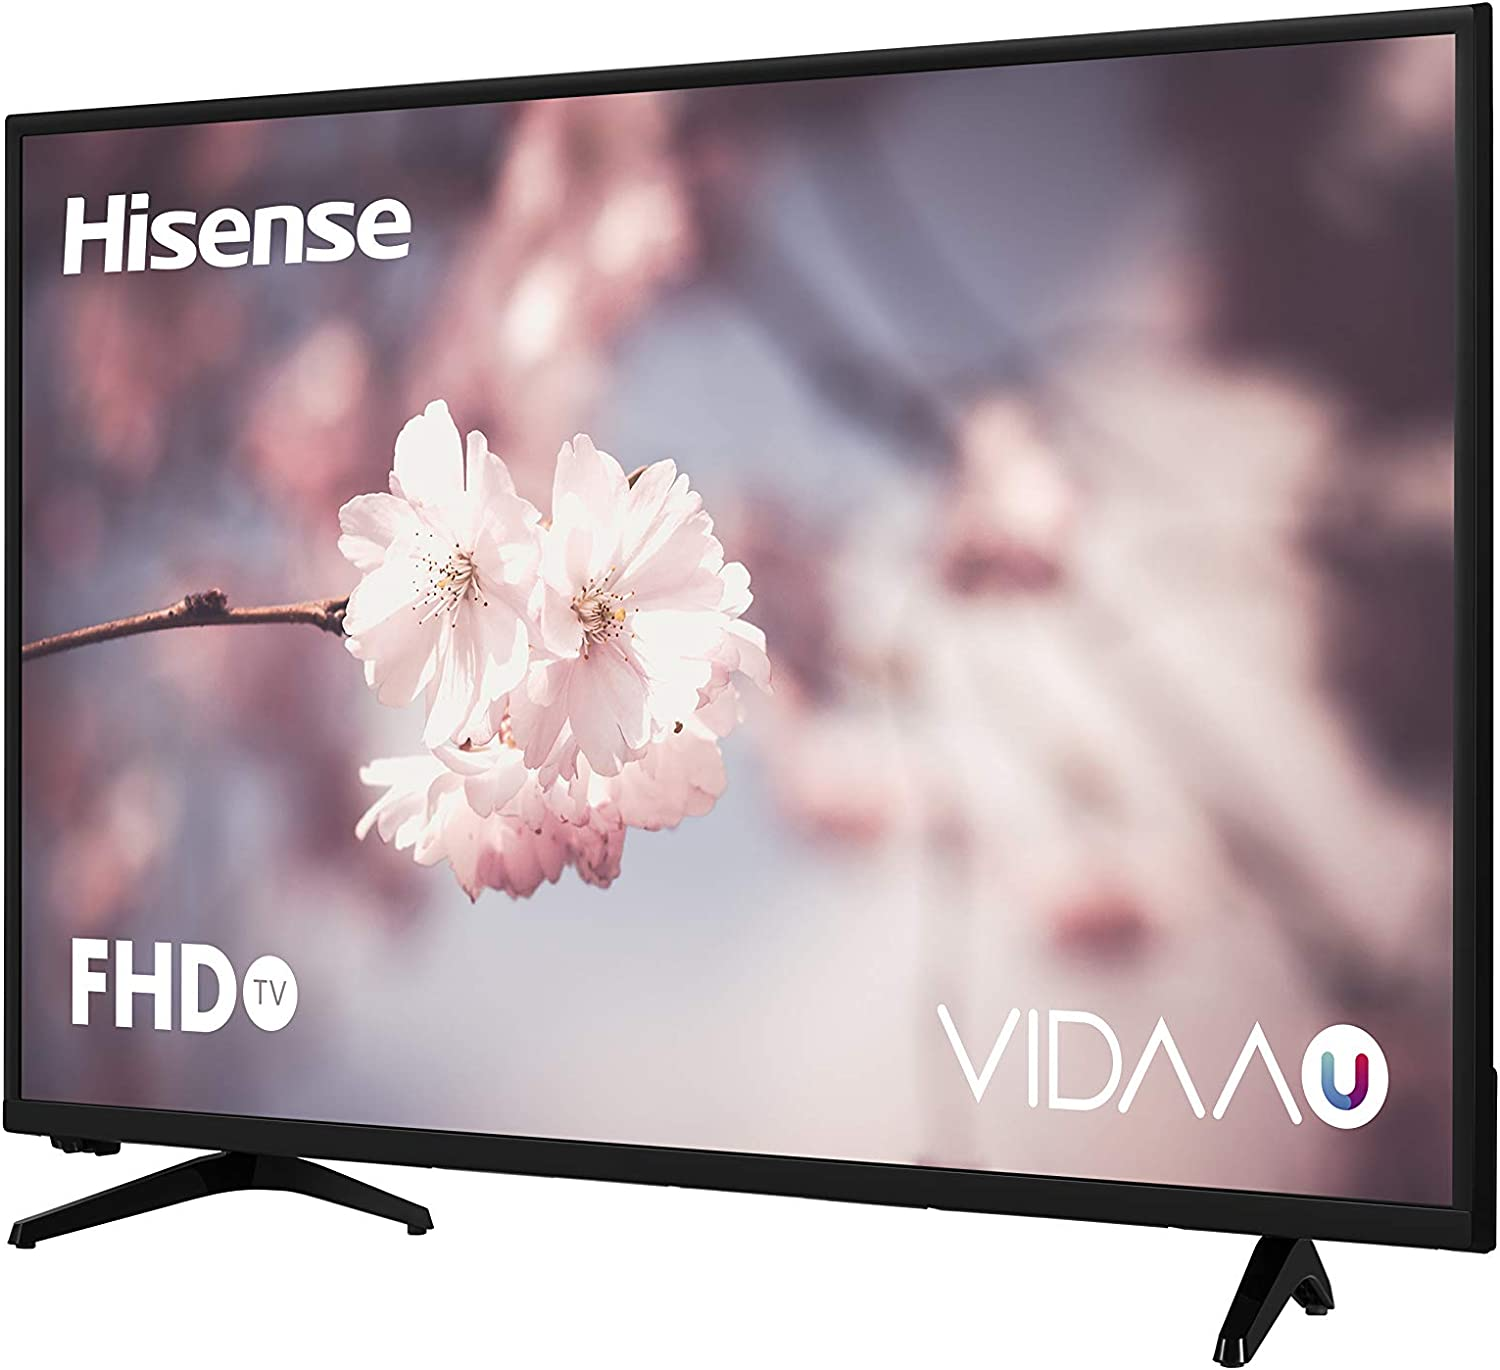 Hisense H39A5600, Smart TV VIDAA U, Natural Color Enhancer, Motion Picture Enhancer, Clean View, Mando Acceso One Touch, WIFI, WIFI Ethernet USB, 39